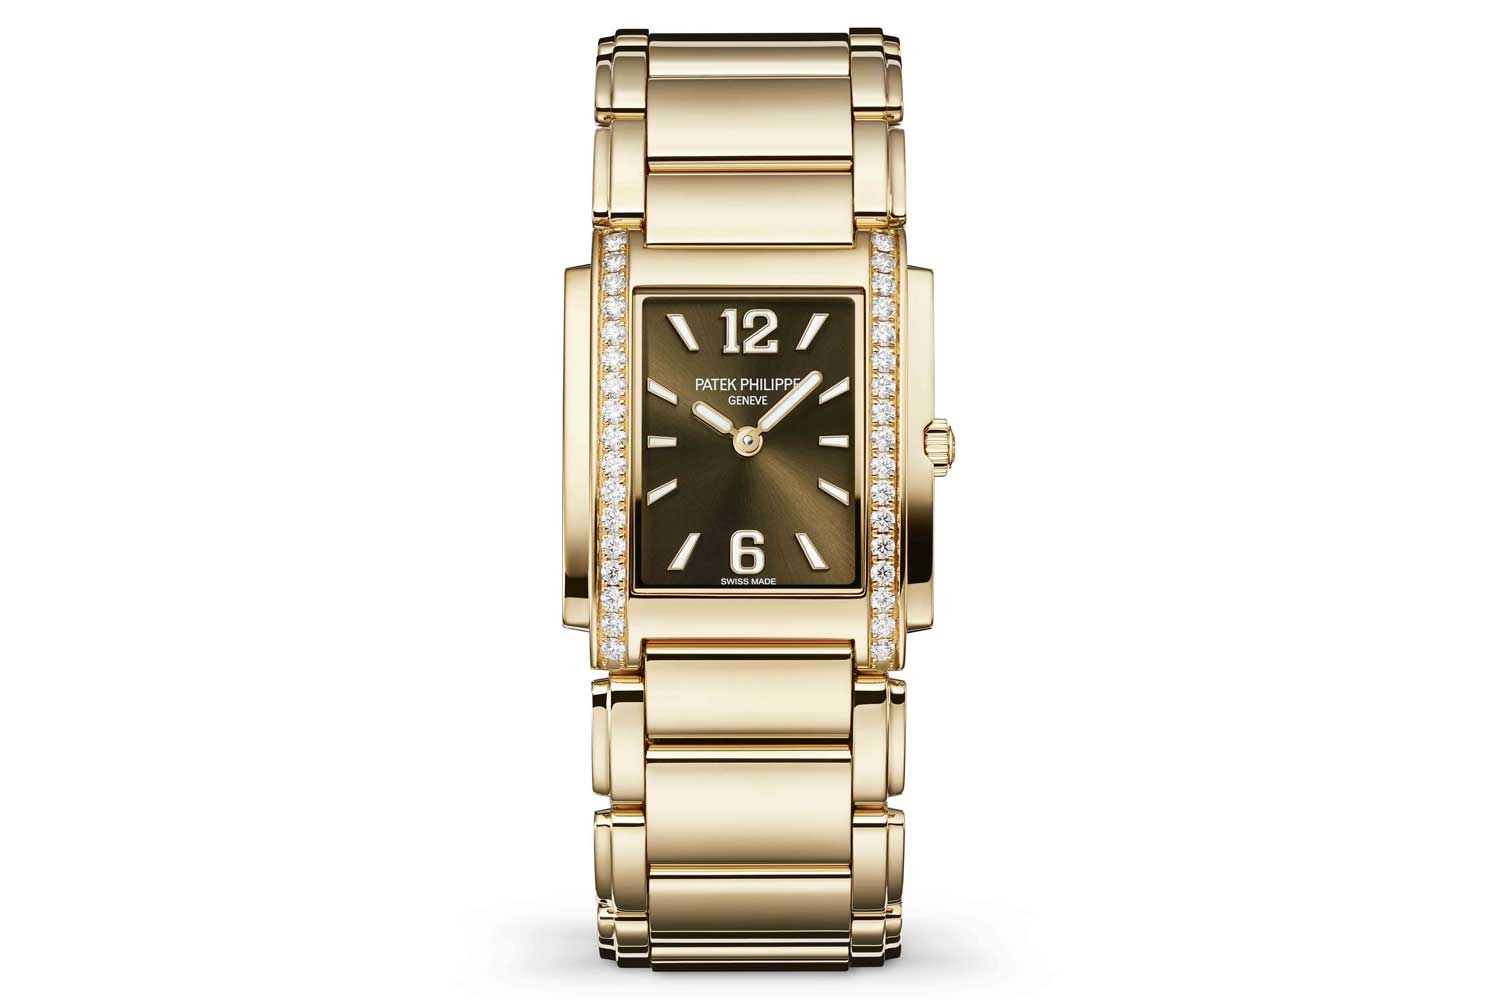 New Copy Watches in Patek Philippe's Twenty~4 Collection